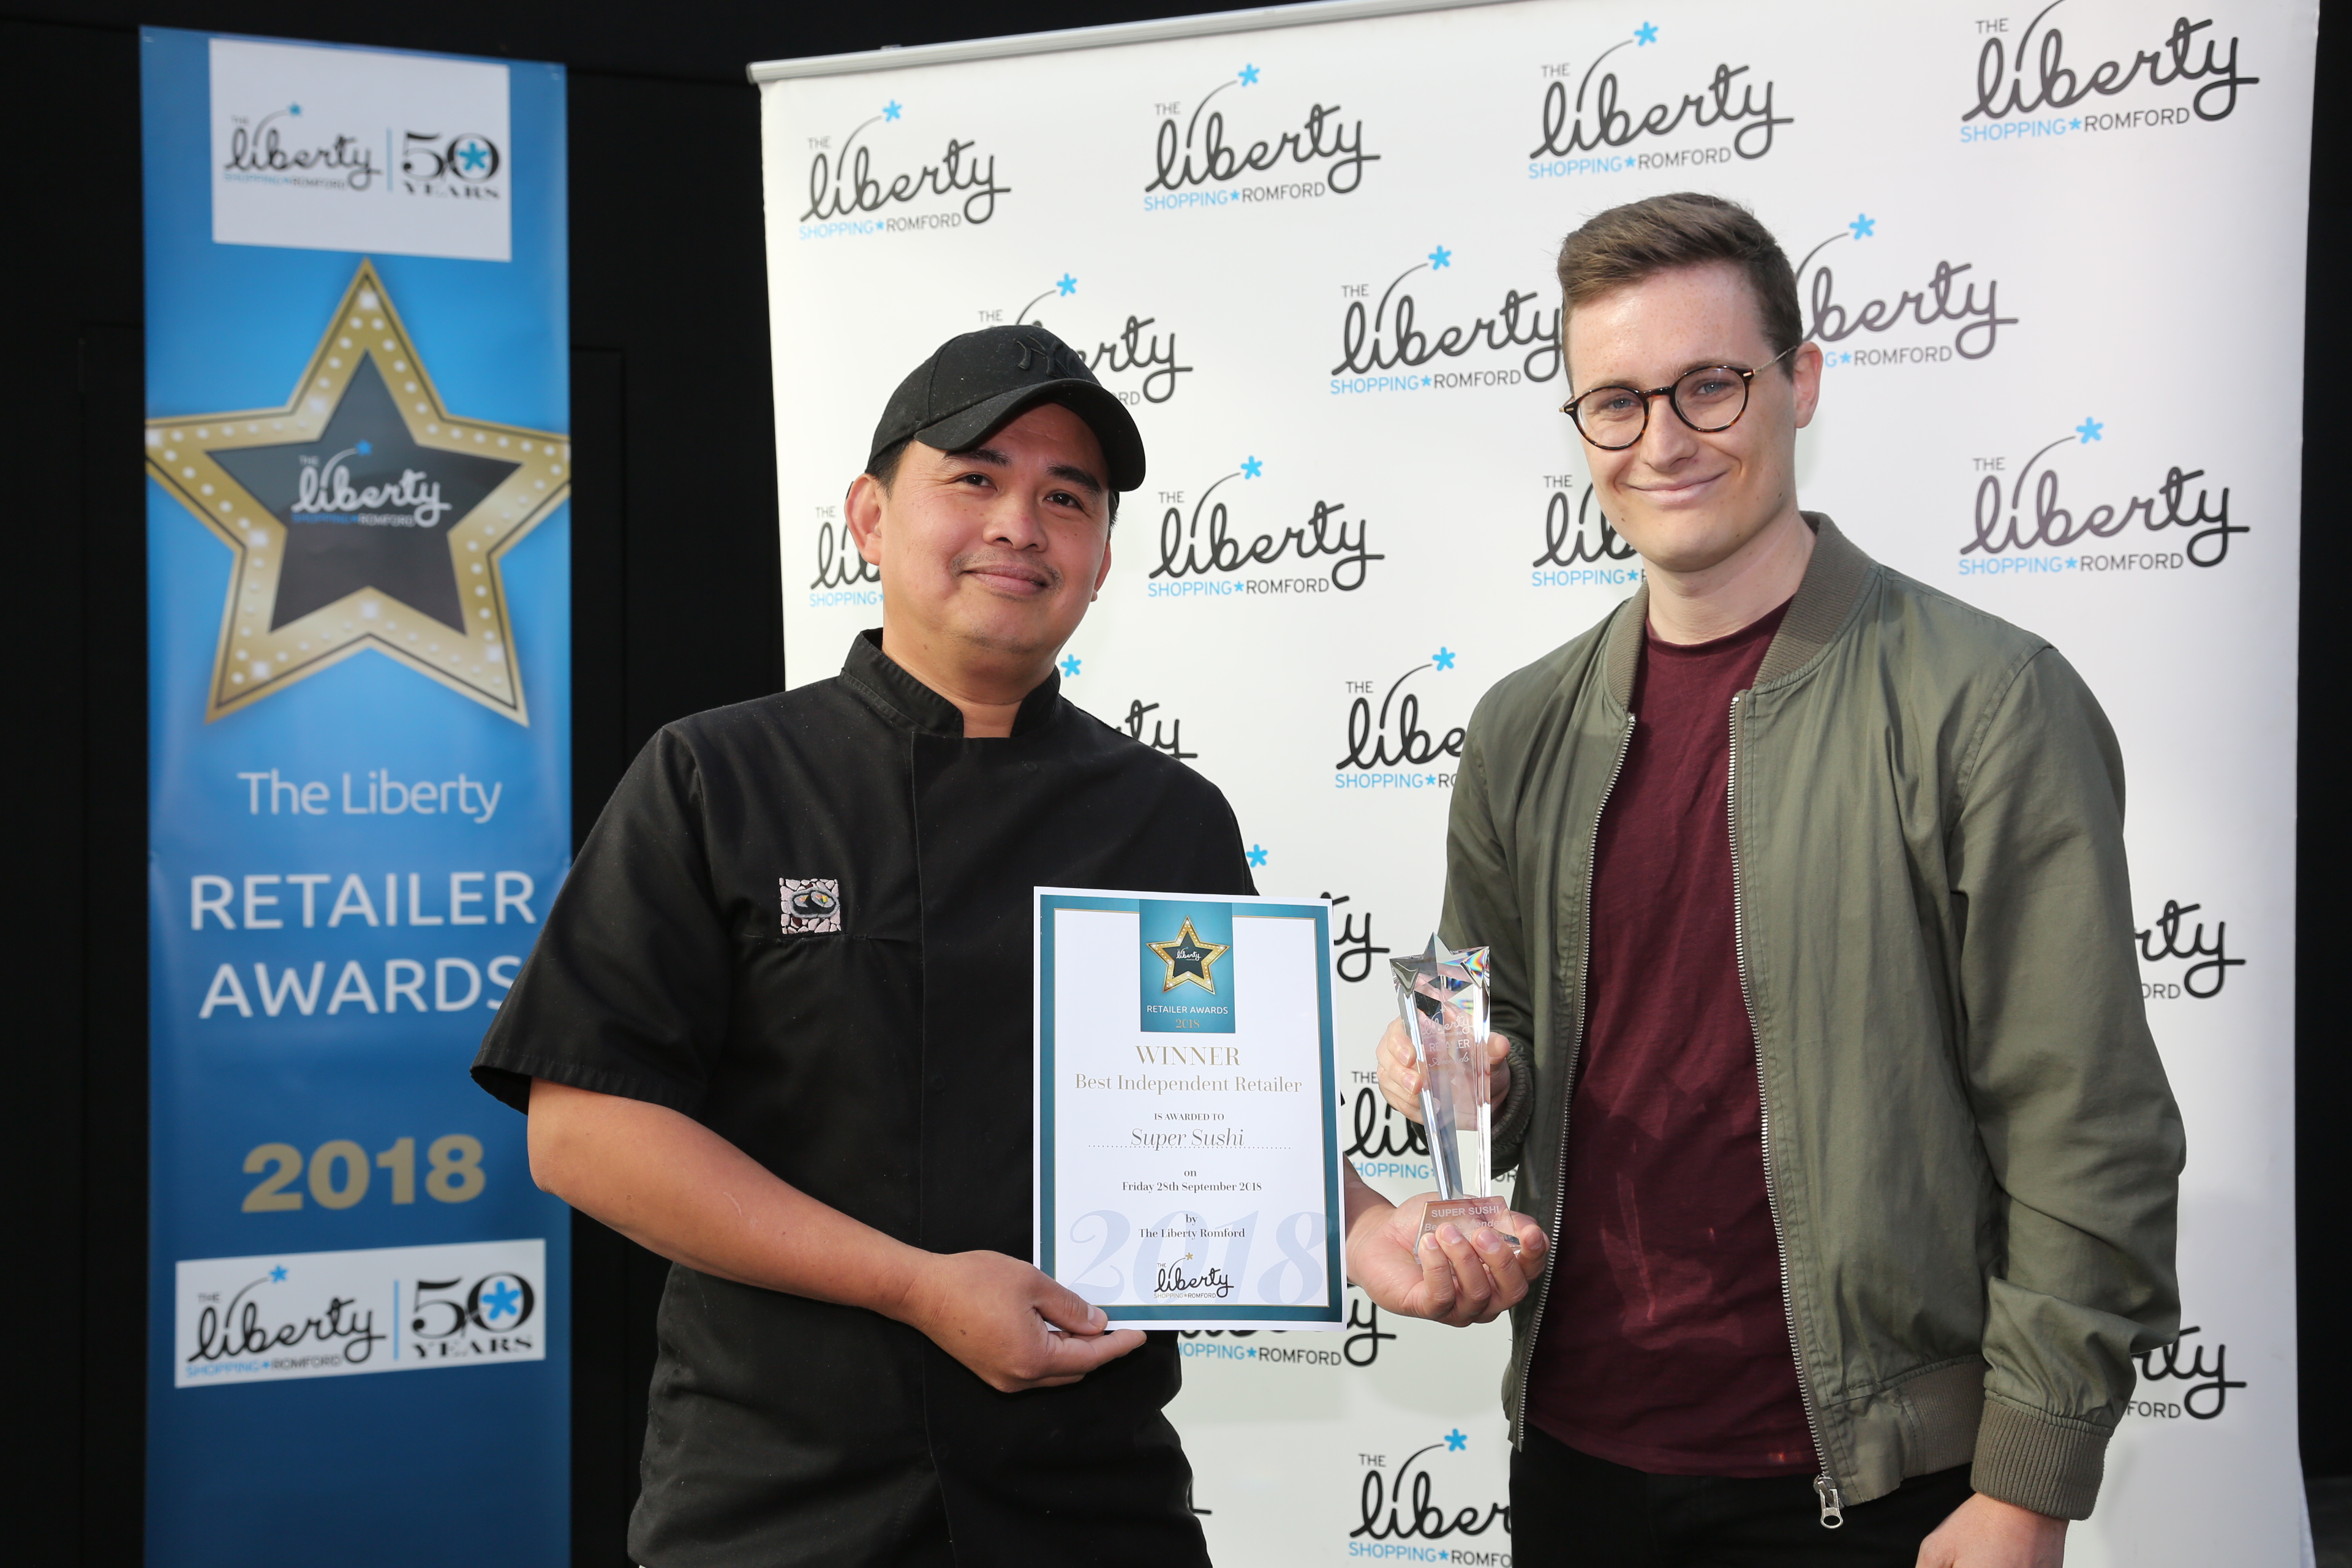 Image: S.Rowse. Best Independent Winner Paul Gonzalez Super Sushi, with Haydn Jeavon from Time 107.5 fm radio